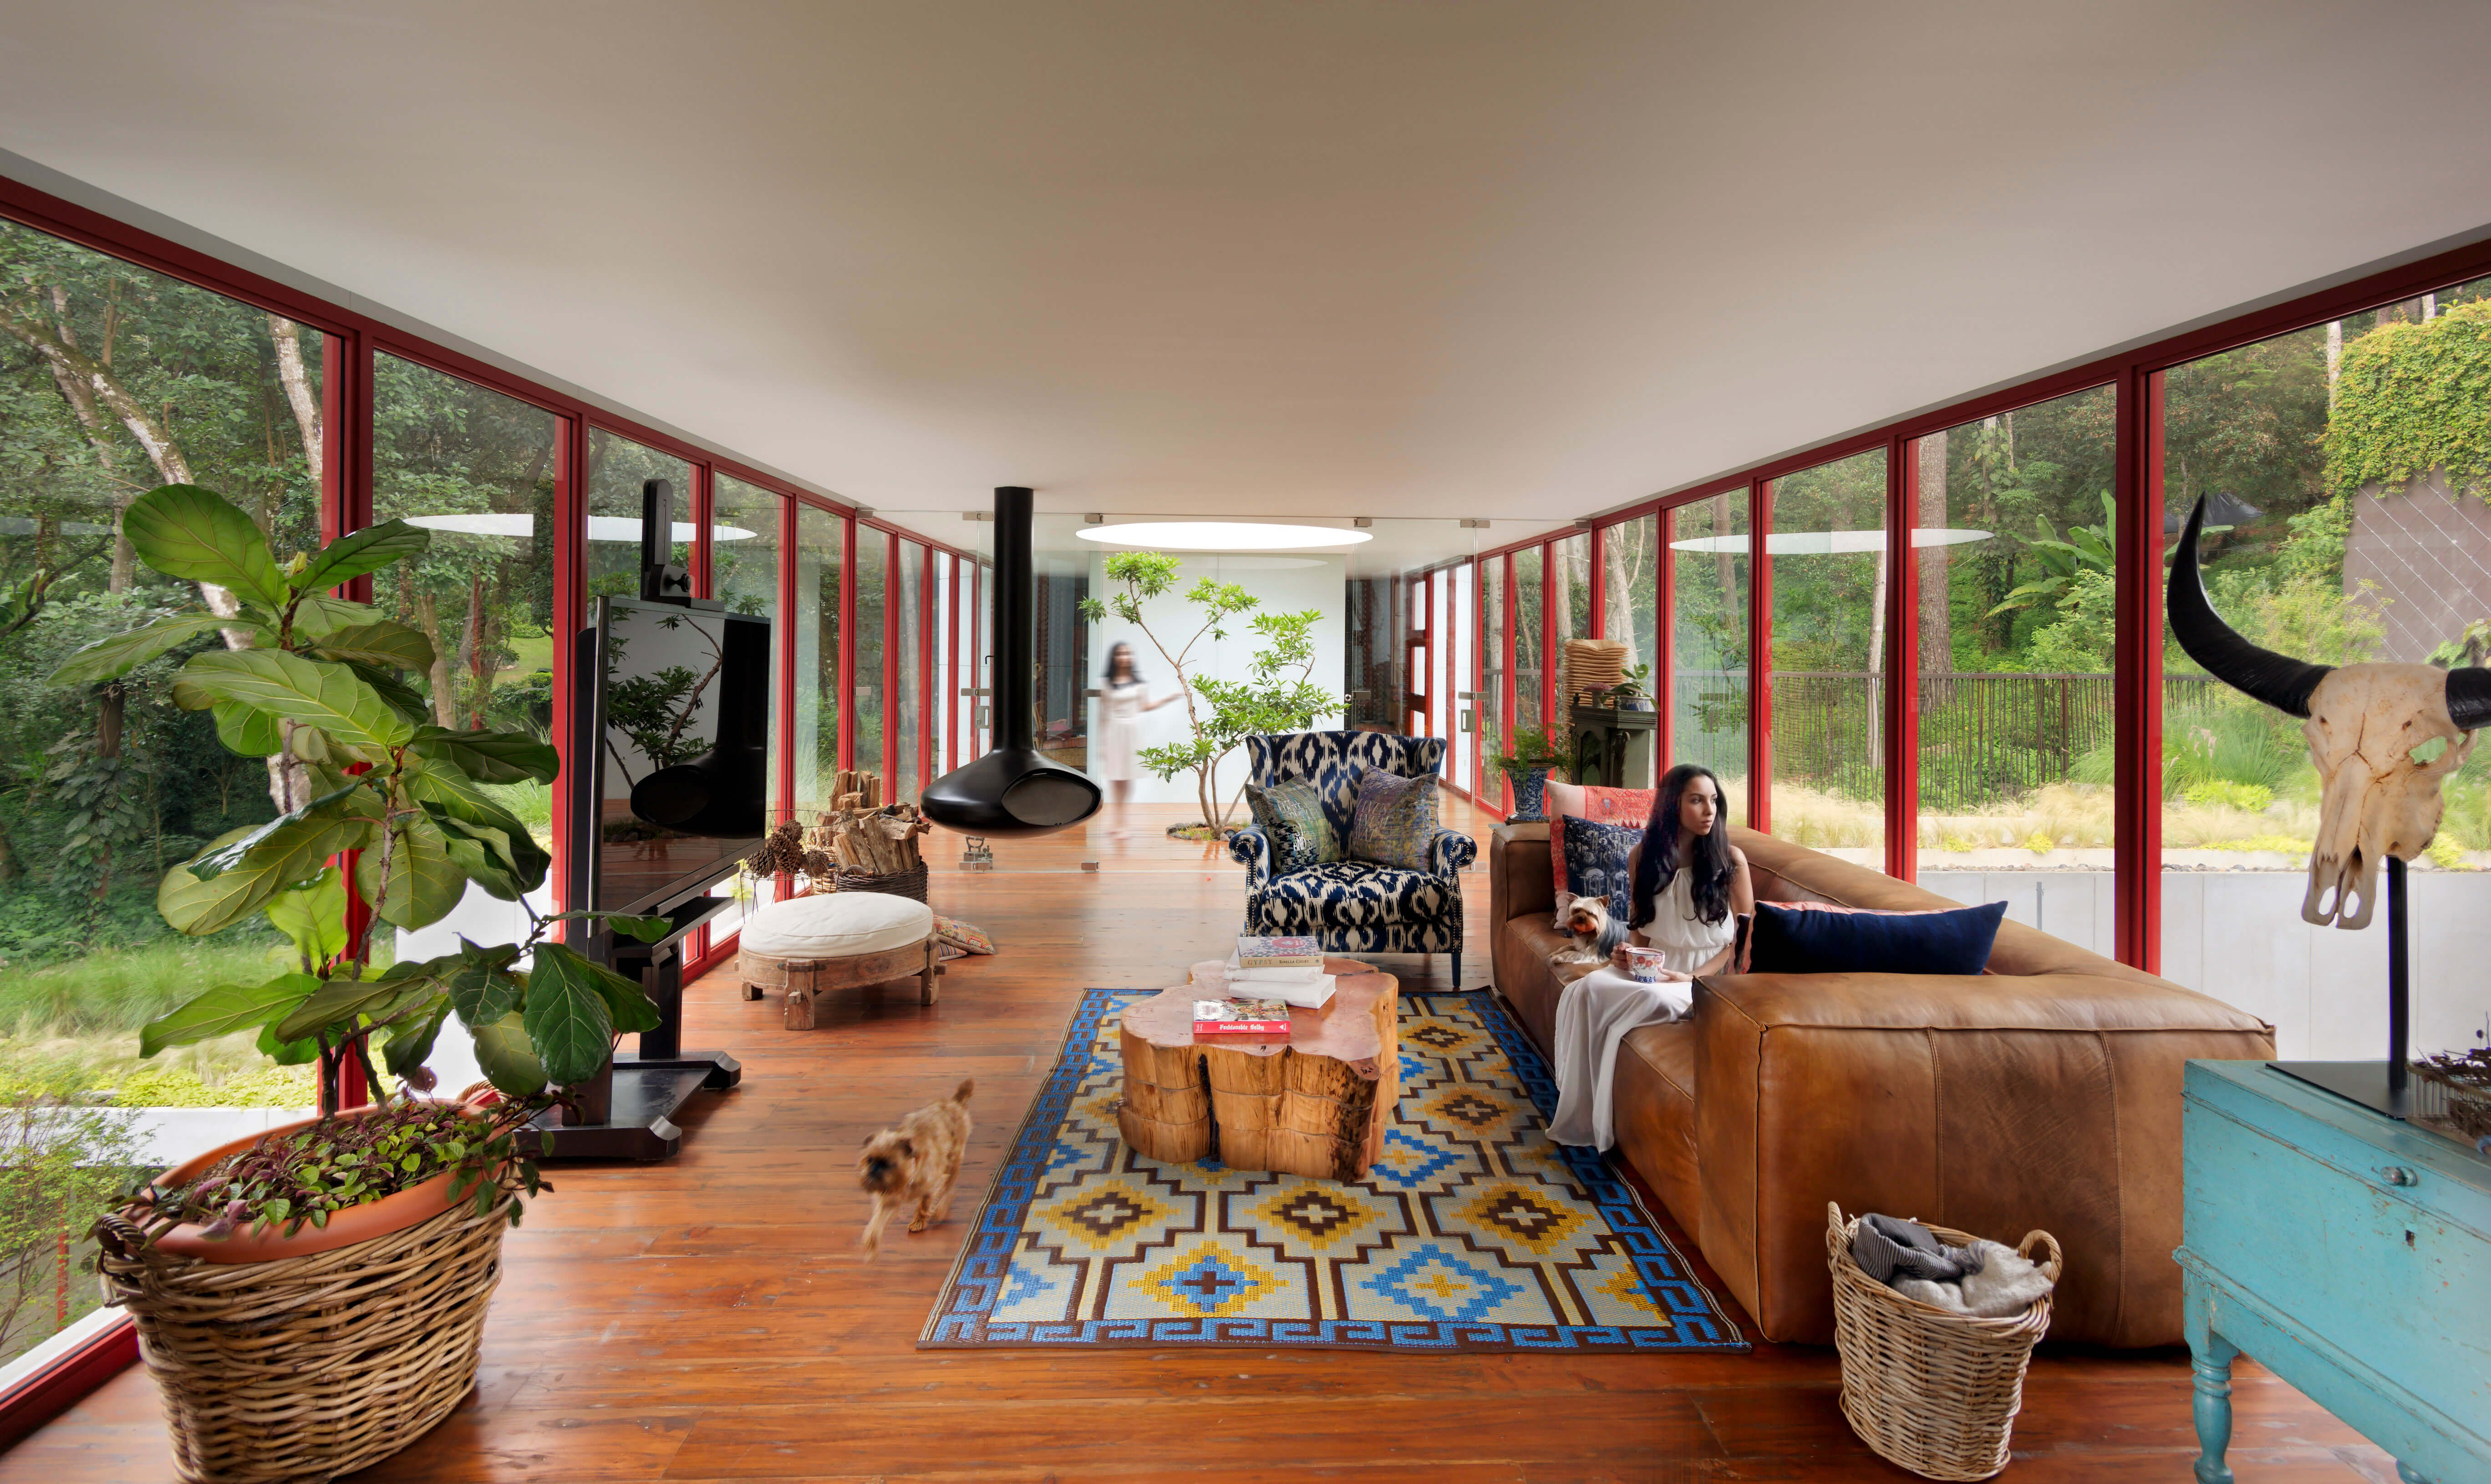 The lengthy, open plan space features a rich hardwood floor in contrast with the cool modern structure, and is filled with a versatile and personalized set of furniture. The plush leather sofa stands beside a tree-slab coffee table, surrounded by plant life and extraordinary views.